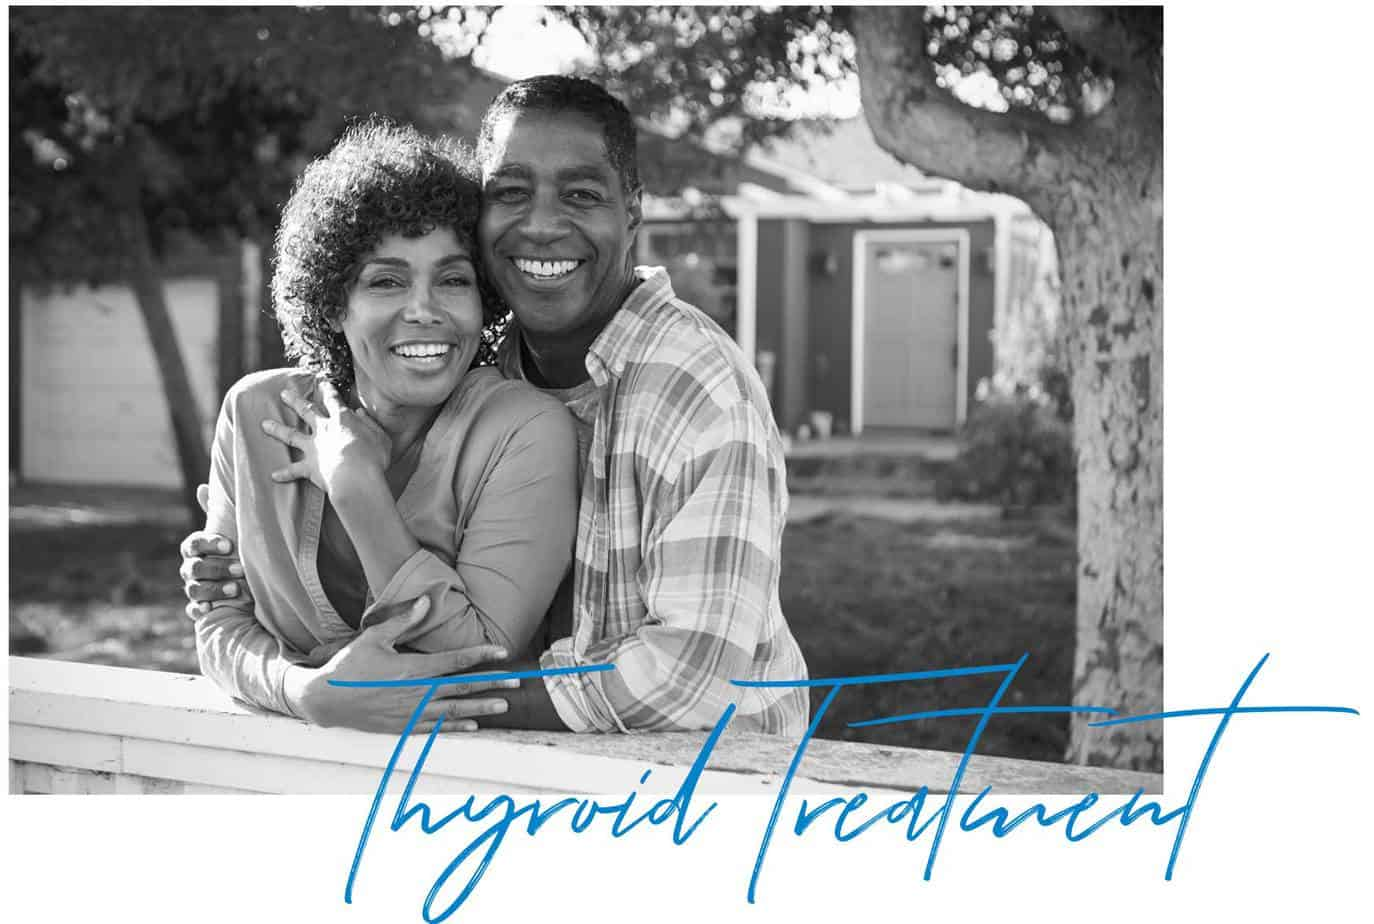 thyroid treatment men women